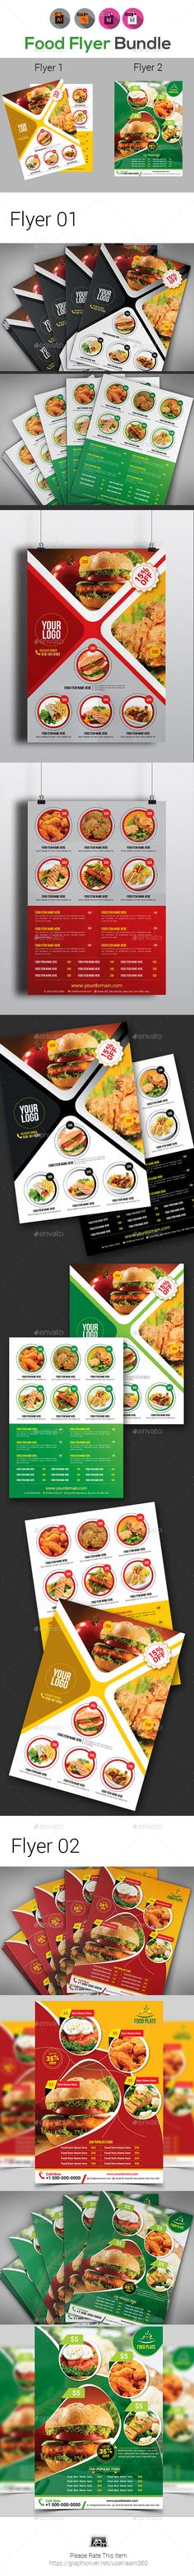 #Food Flyer #Bundle Templates - #Restaurant Flyers Download here:   https://graphicriver.net/item/food-flyer-bundle-templates/20334846?ref=alena994